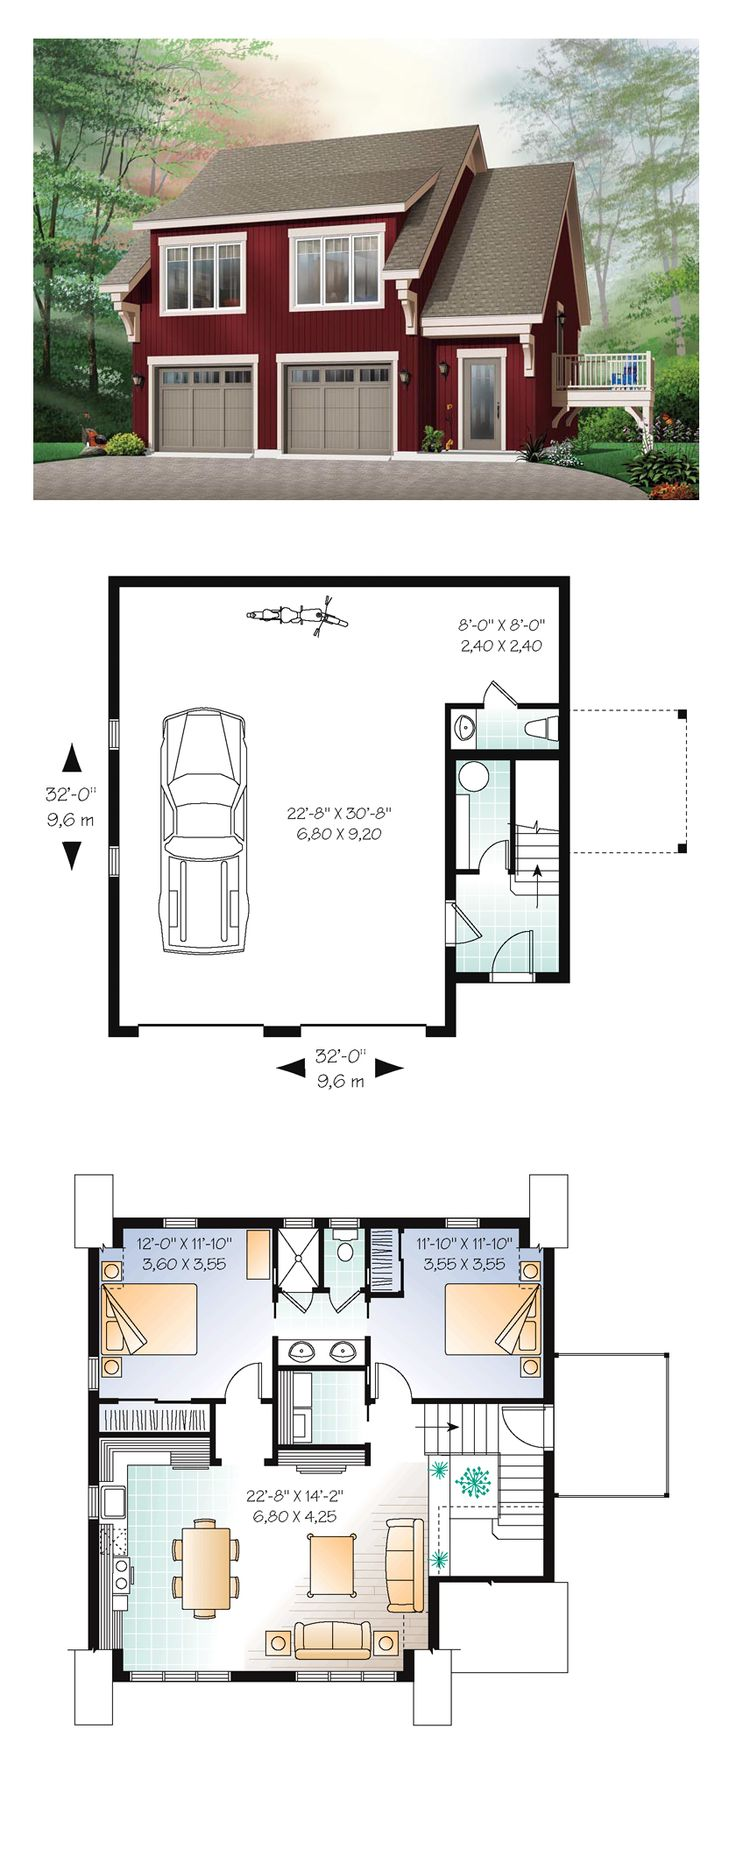 Marvelous Garage Apartment Plan 64817 | Total Living Area: 1068 Sq. Ft., 2